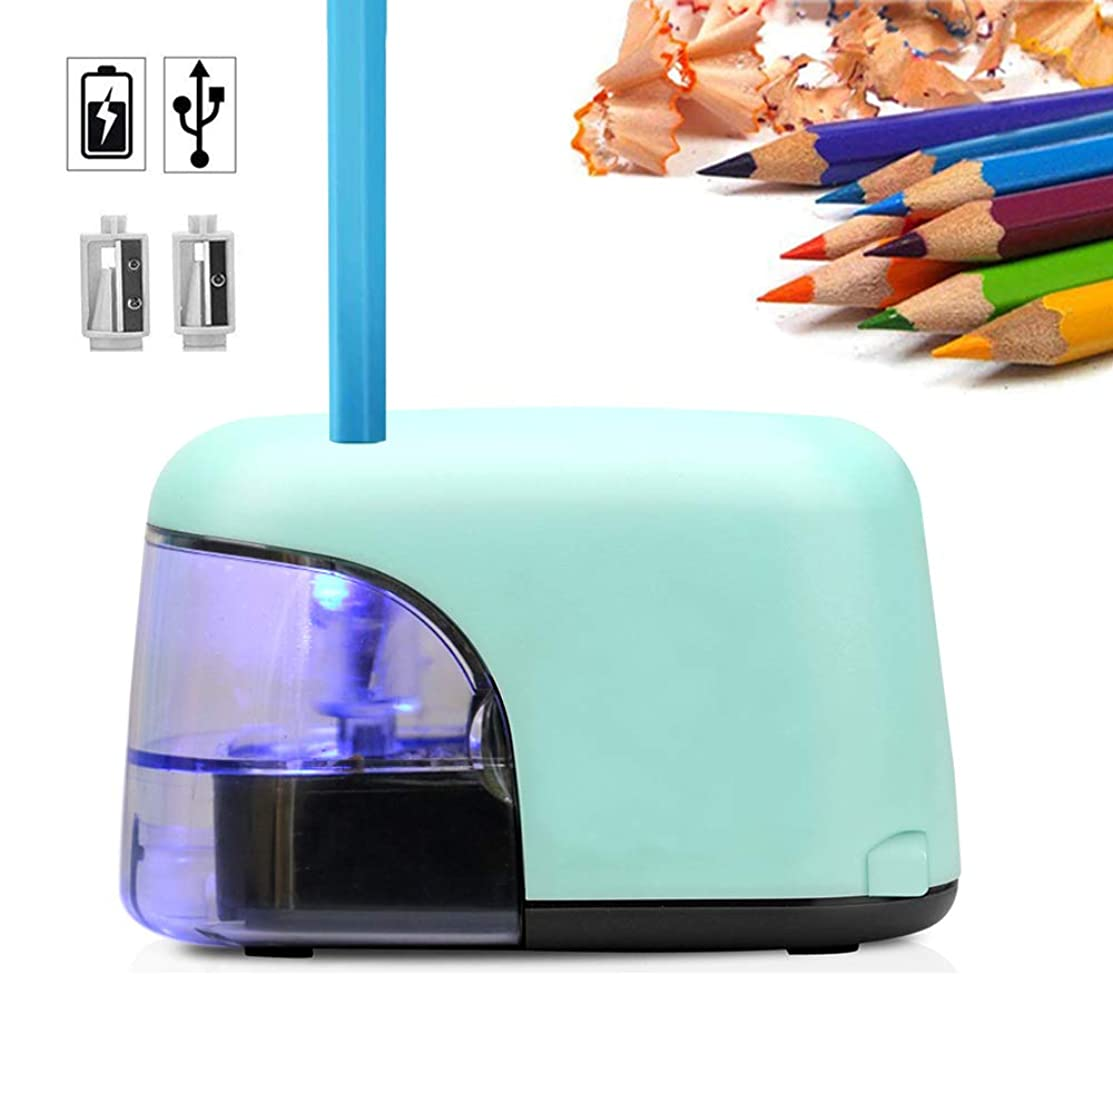 Electric Pencil Sharpener, USB or Battery Operated Pencil Sharpener, Heavy Duty Automatic Pencil Sharpener With LED Light and 2 Steel Blades for 6.5-8mm Diameter Pencils for Artists, Students and Kids